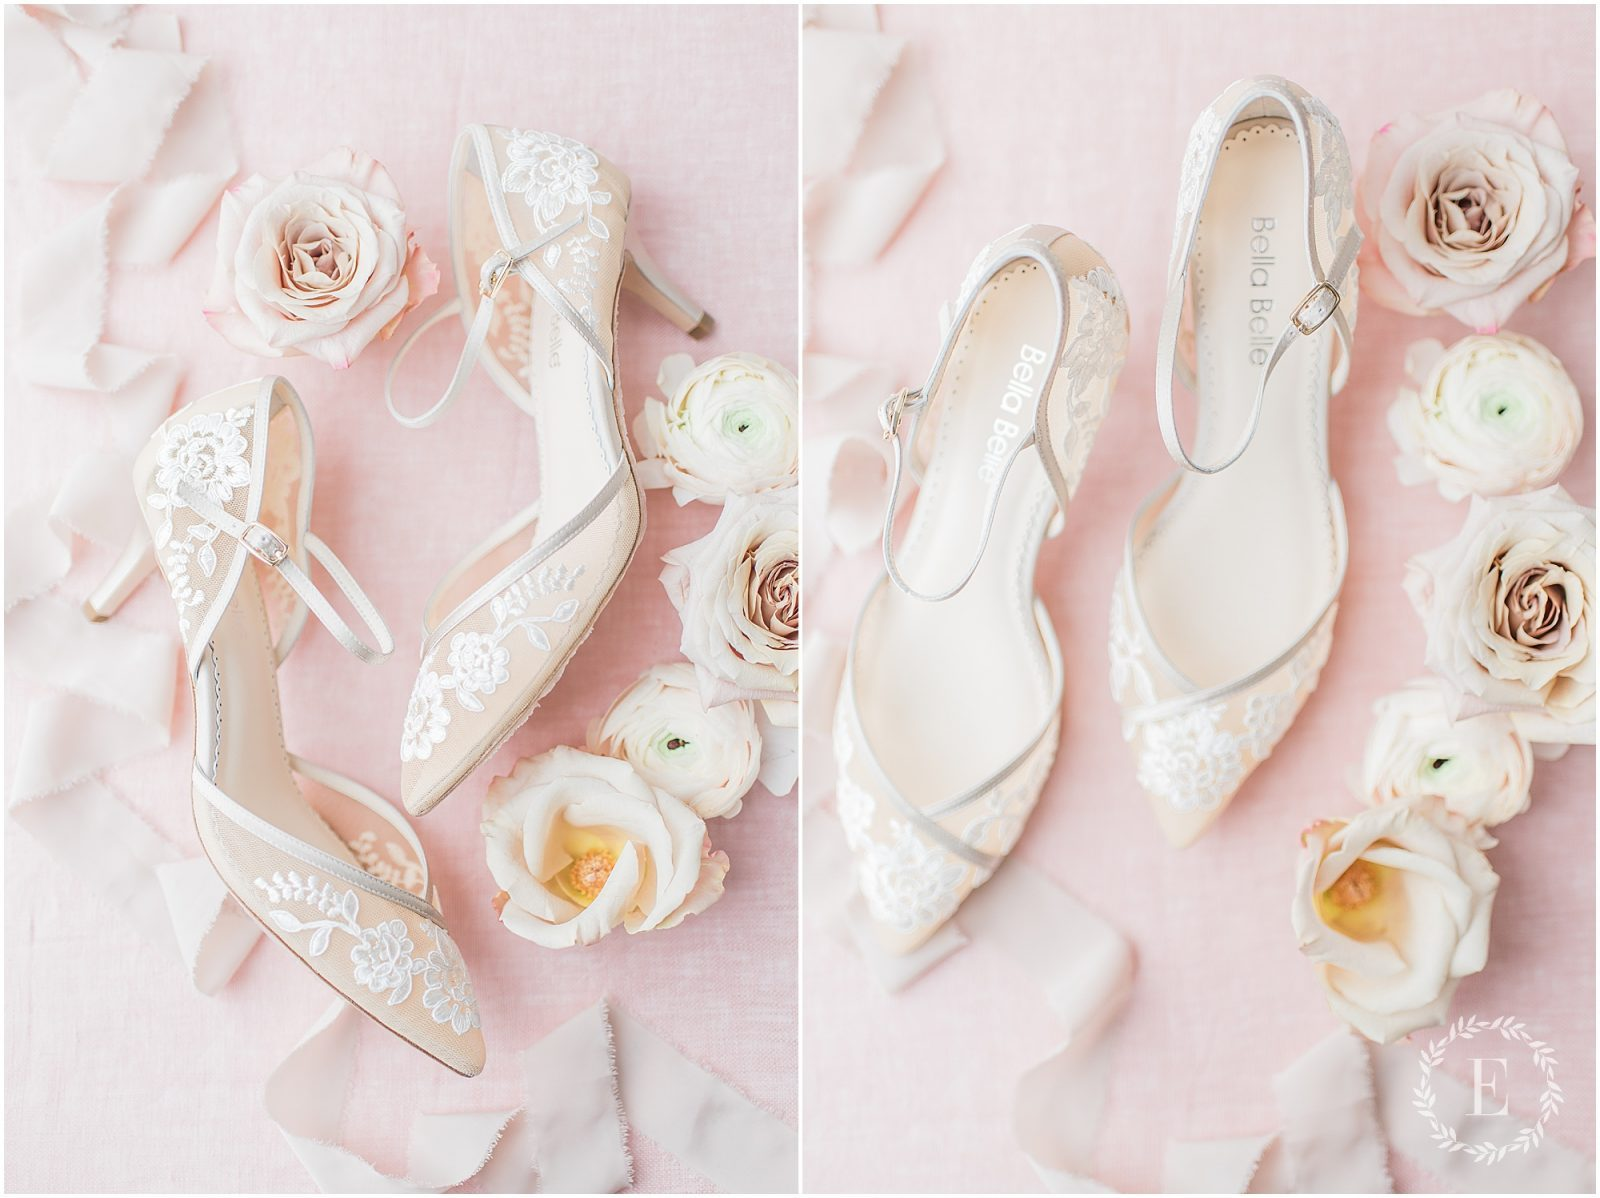 wedding shoes ottawa, bella belle shoes canada - photography by emma